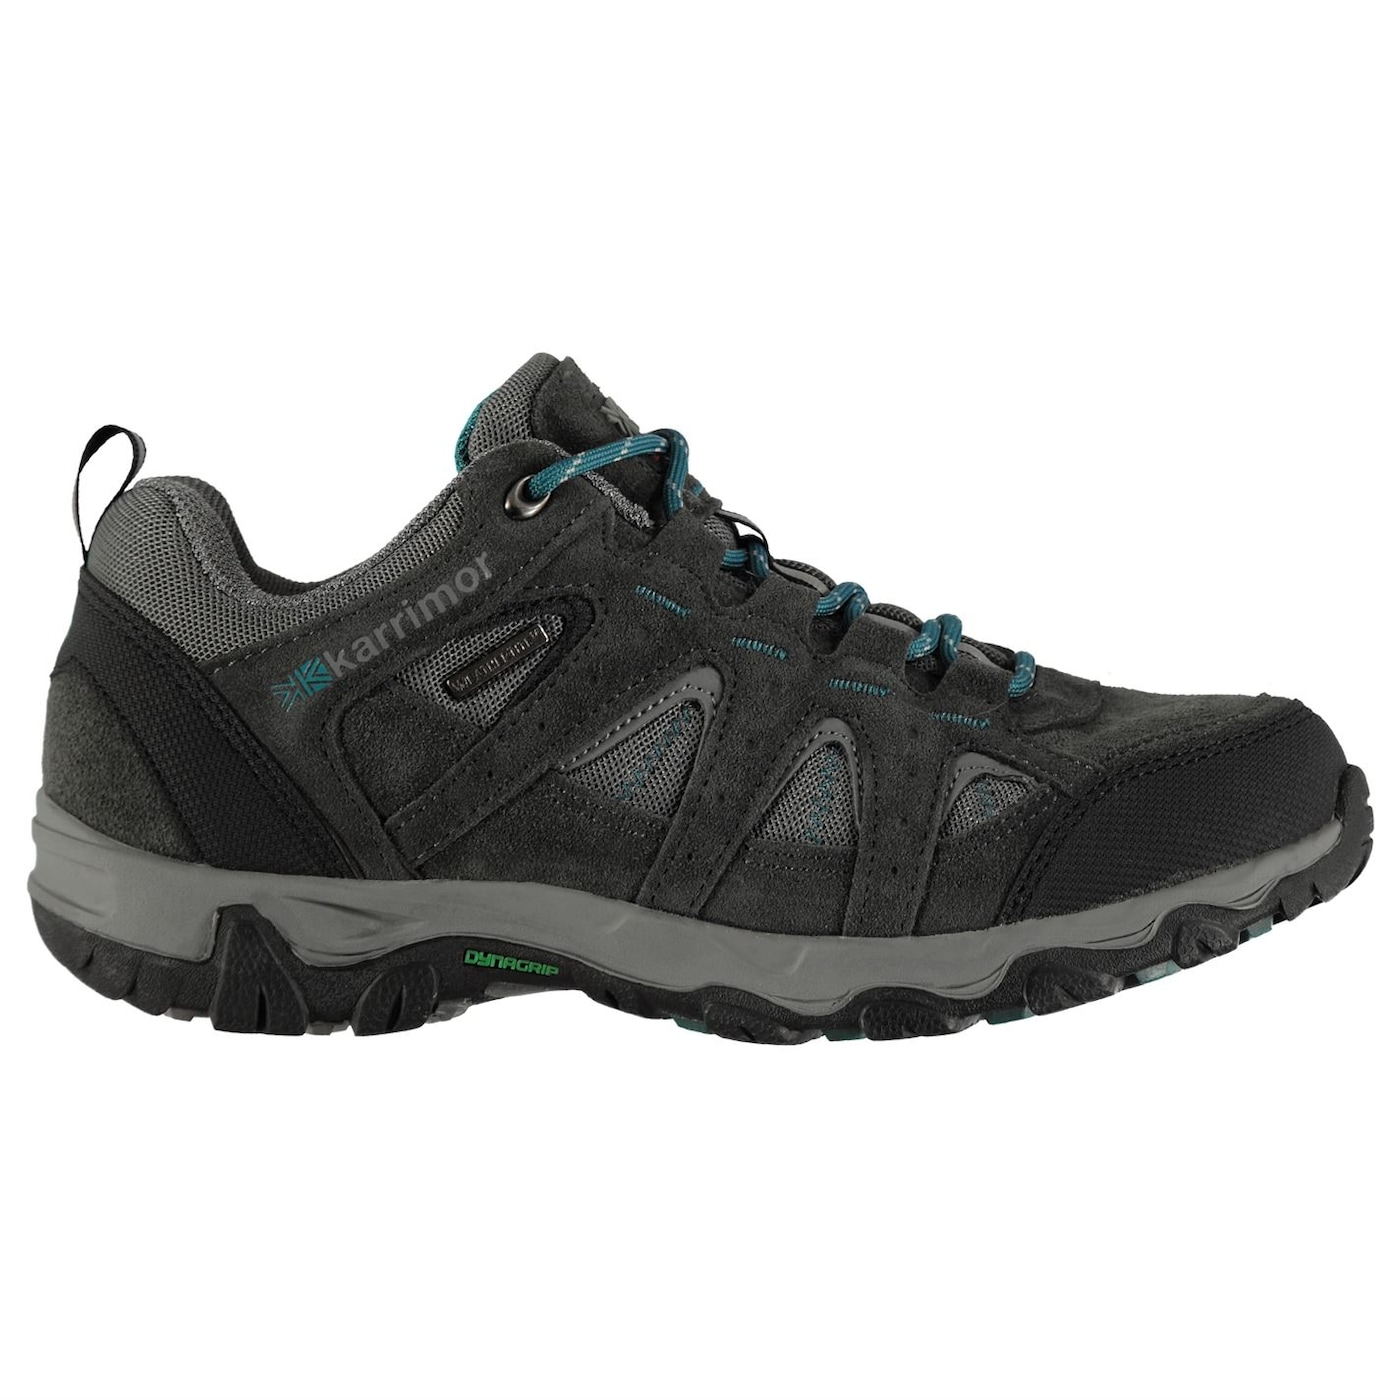 Karrimor Mount Low Junior Walking Shoes